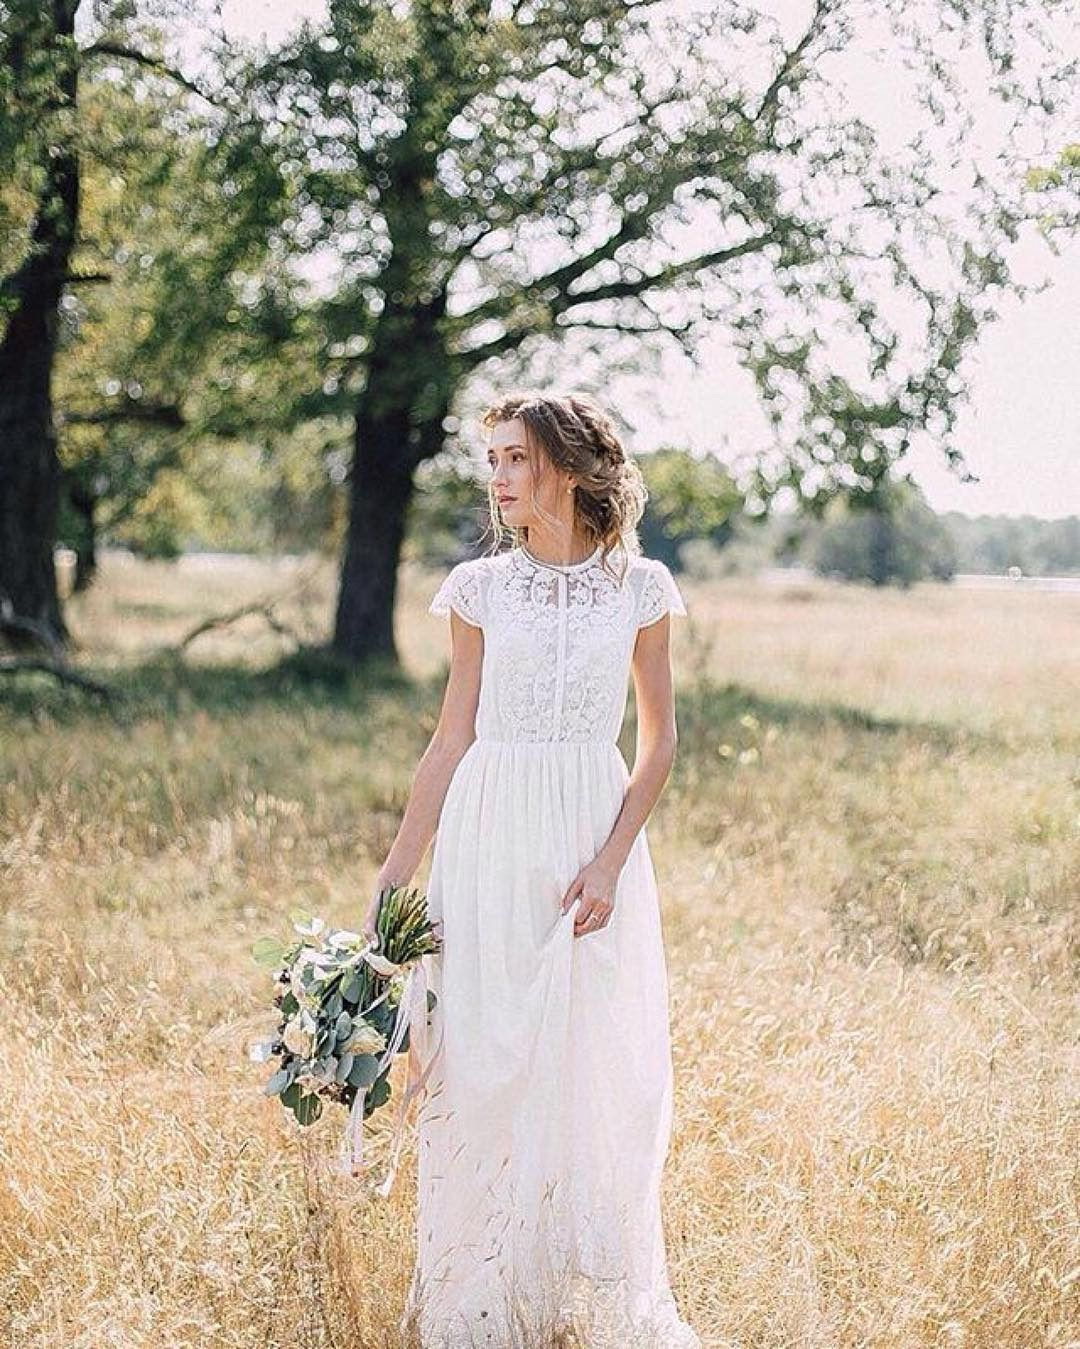 Dress fw wedding dress boho wedding dress romantic wedding